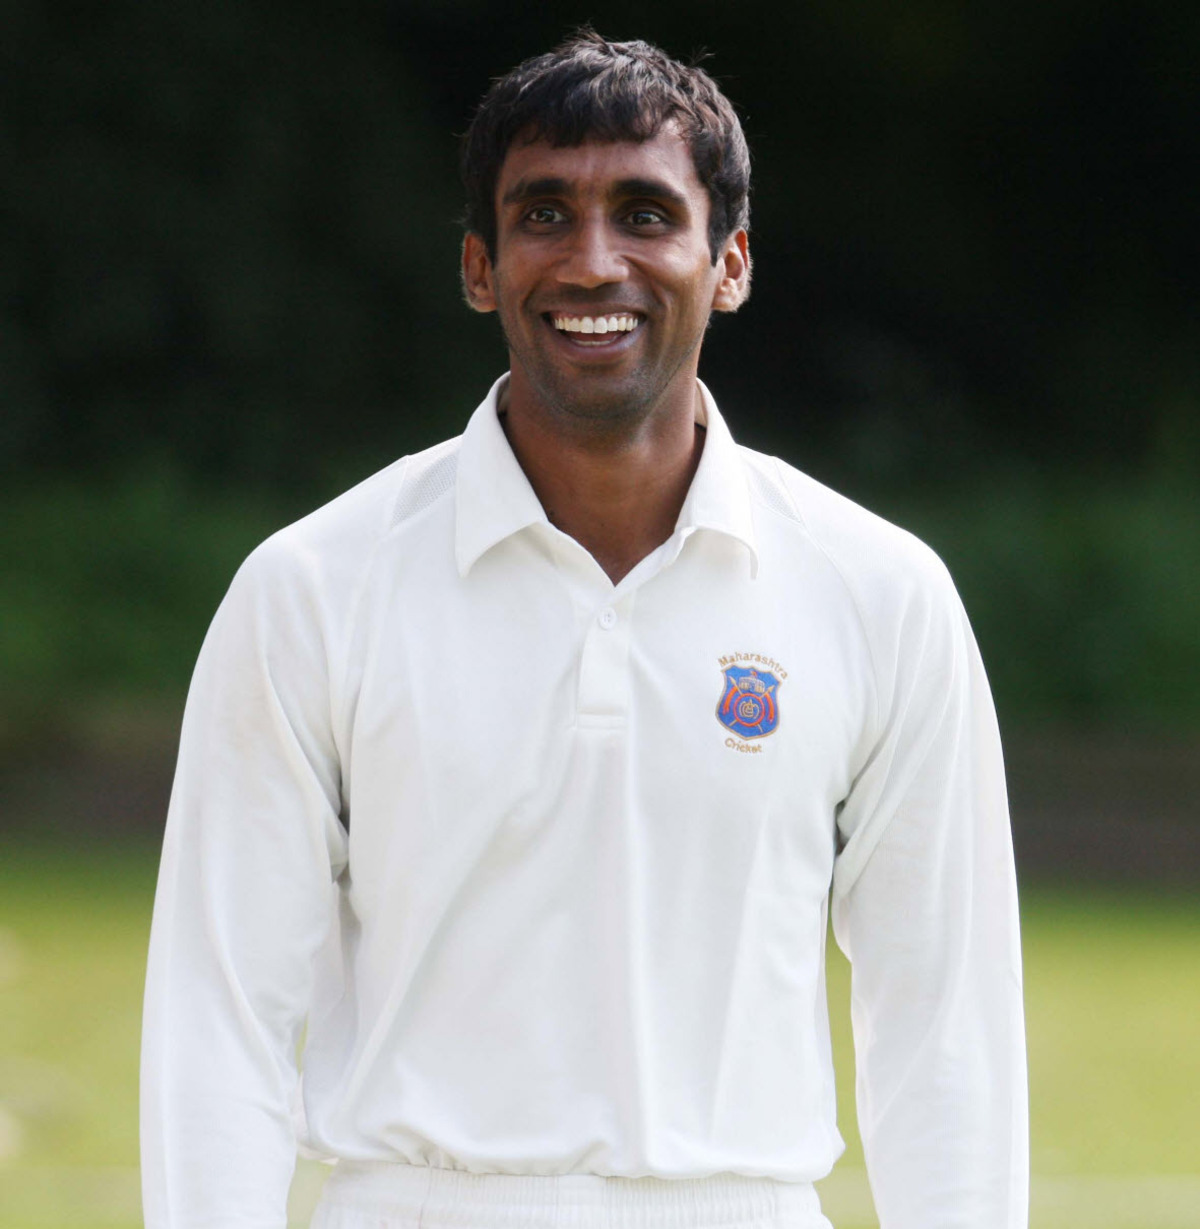 Anupam Sanklecha took 4-22 for Shipton in their unlikely 11-run win at Cove